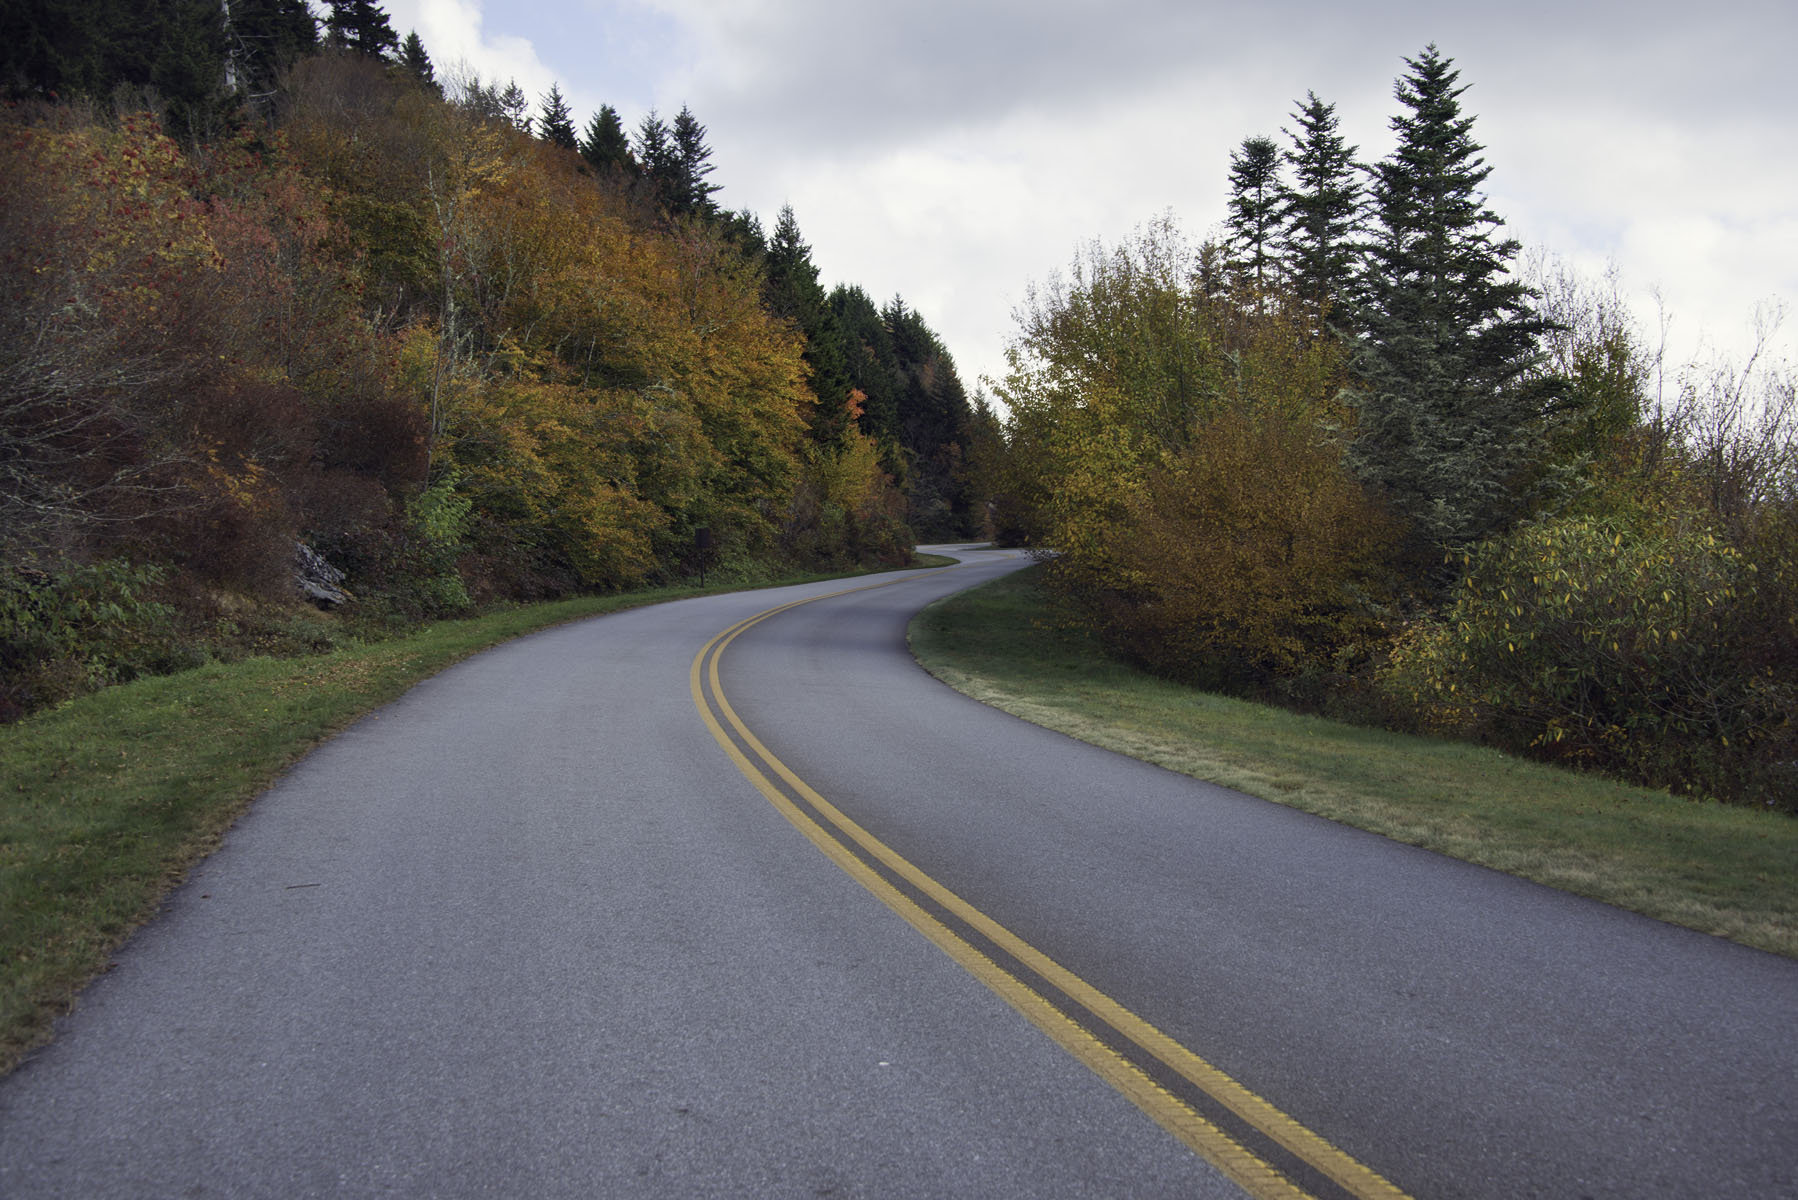 Winding Road in the Woods on the Blue Ridge Parkway